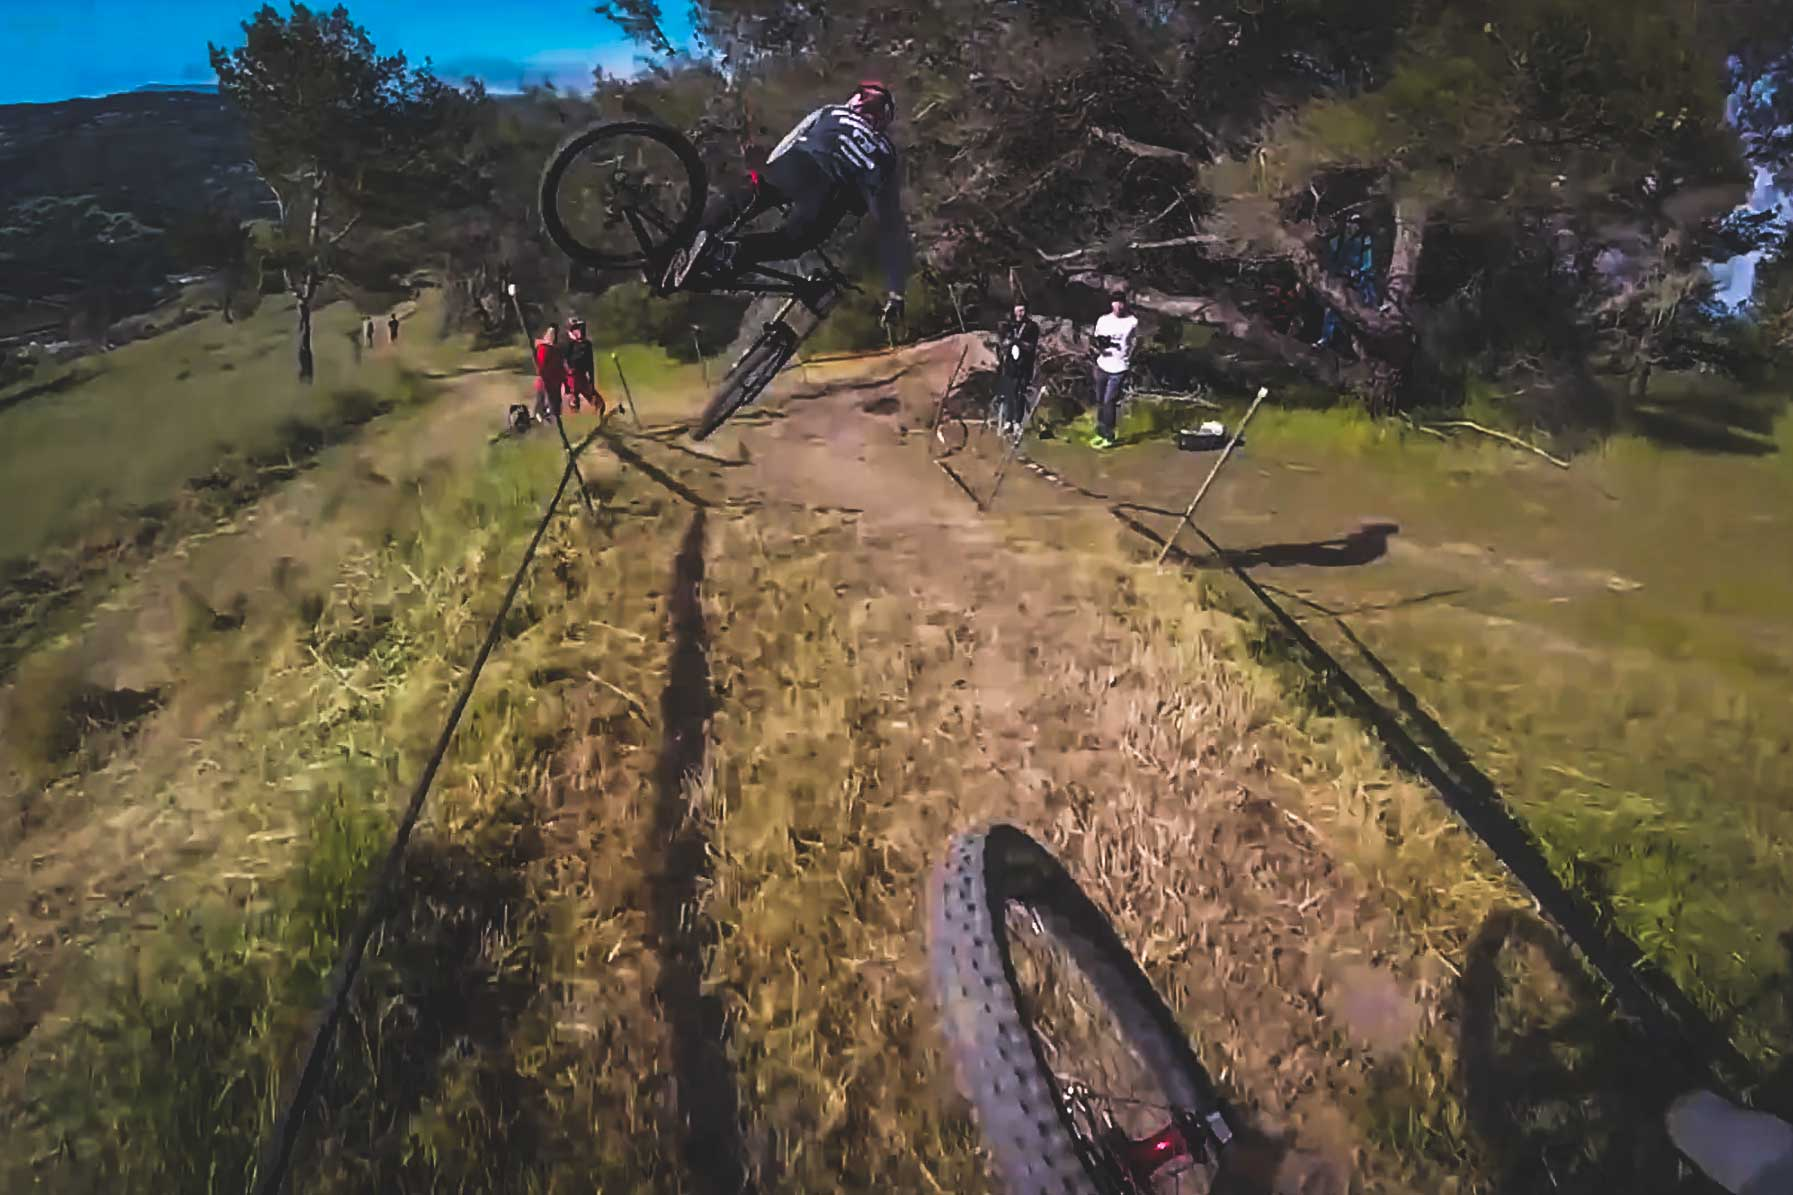 Video: <br> The Syndicate - Syndicate HQ, Sea Otter Dual Slalom + Downhill!